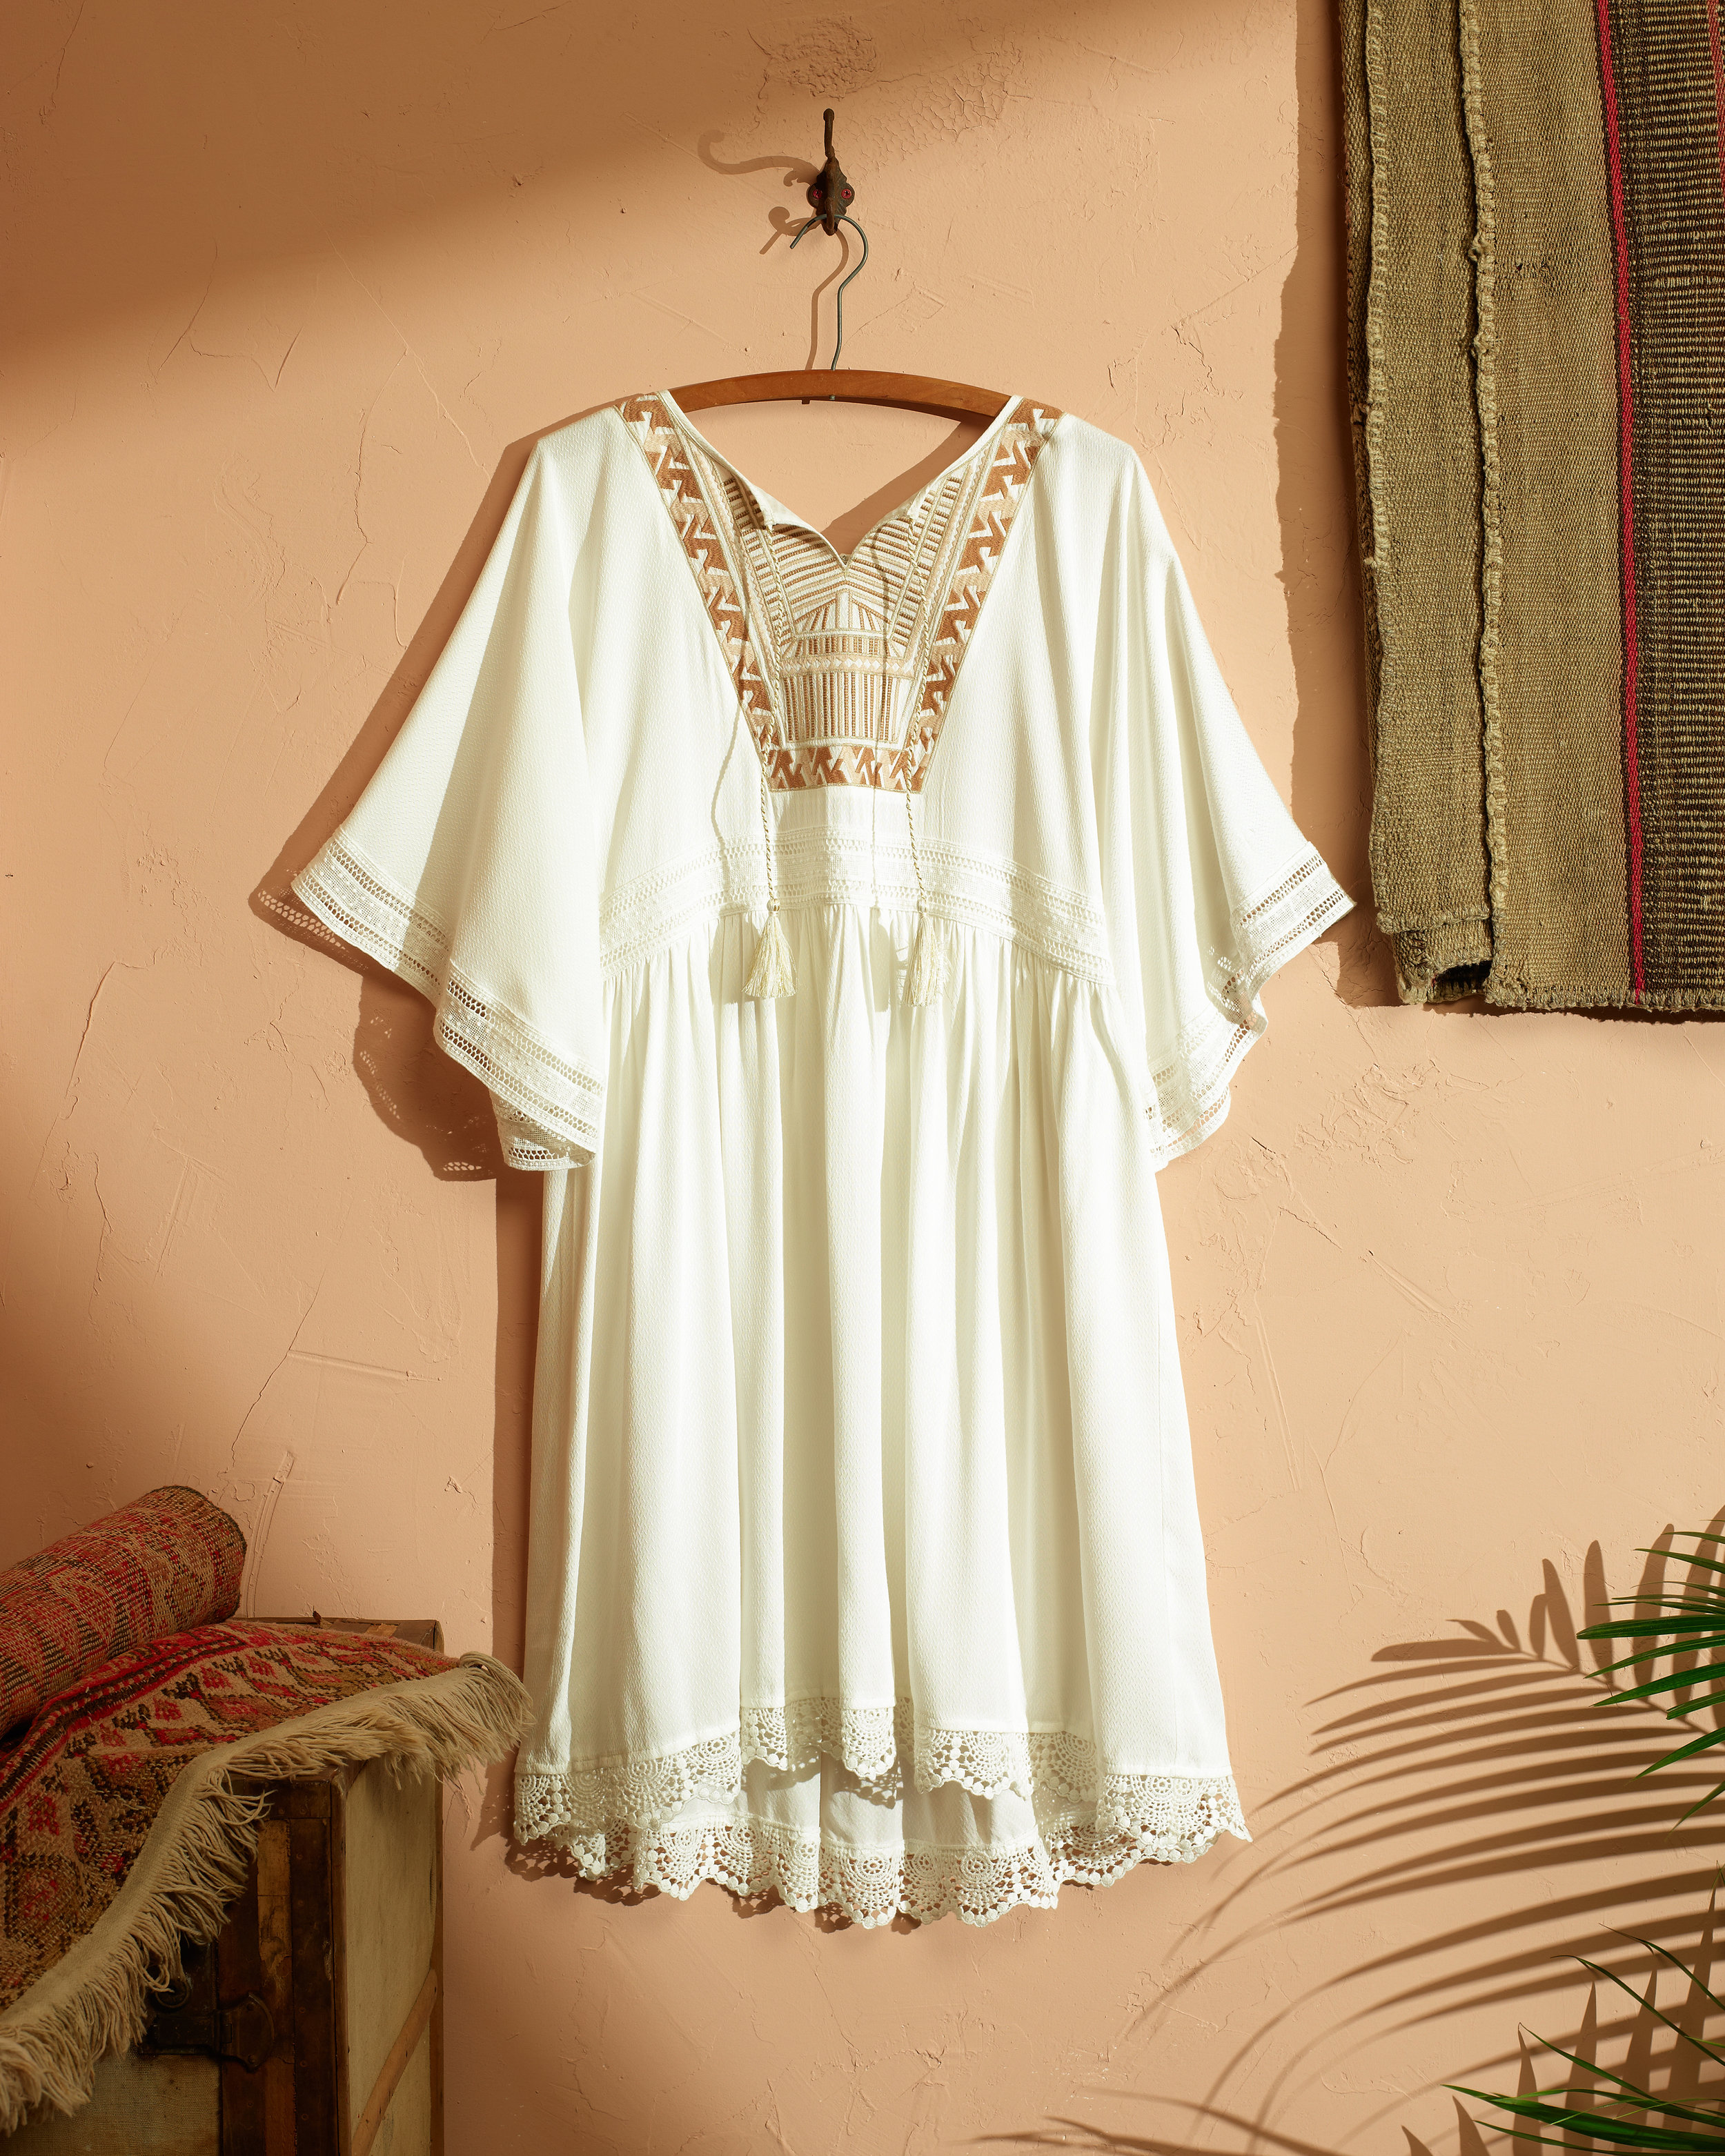 019_0670_ELLAMOON_DETAIL2_WHITEDRESS_CRP2.jpg